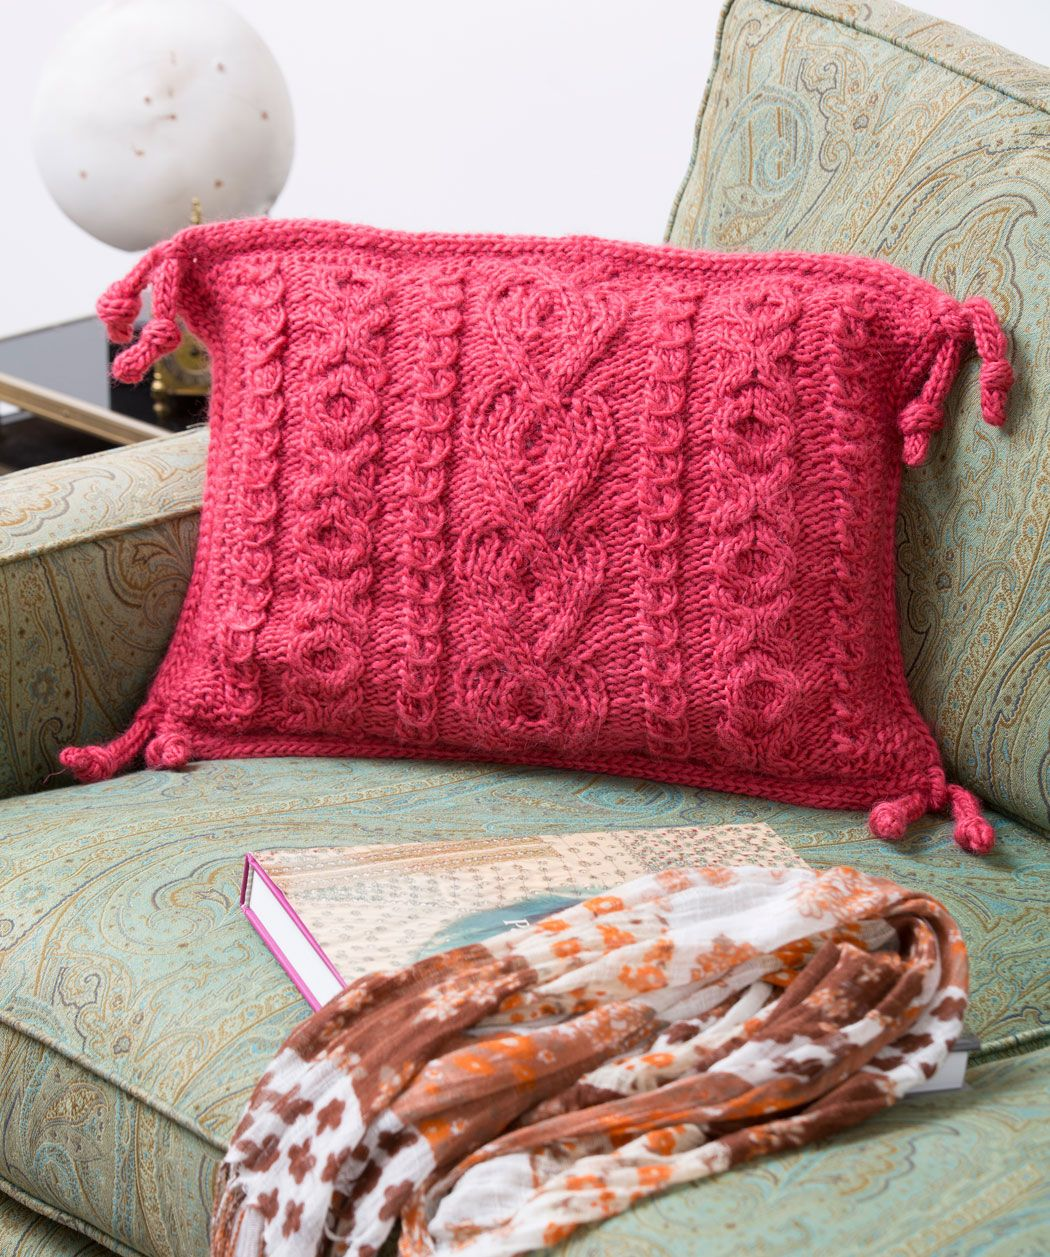 Knitting Pillow Patterns For Beginners Let S Cuddle Pillow